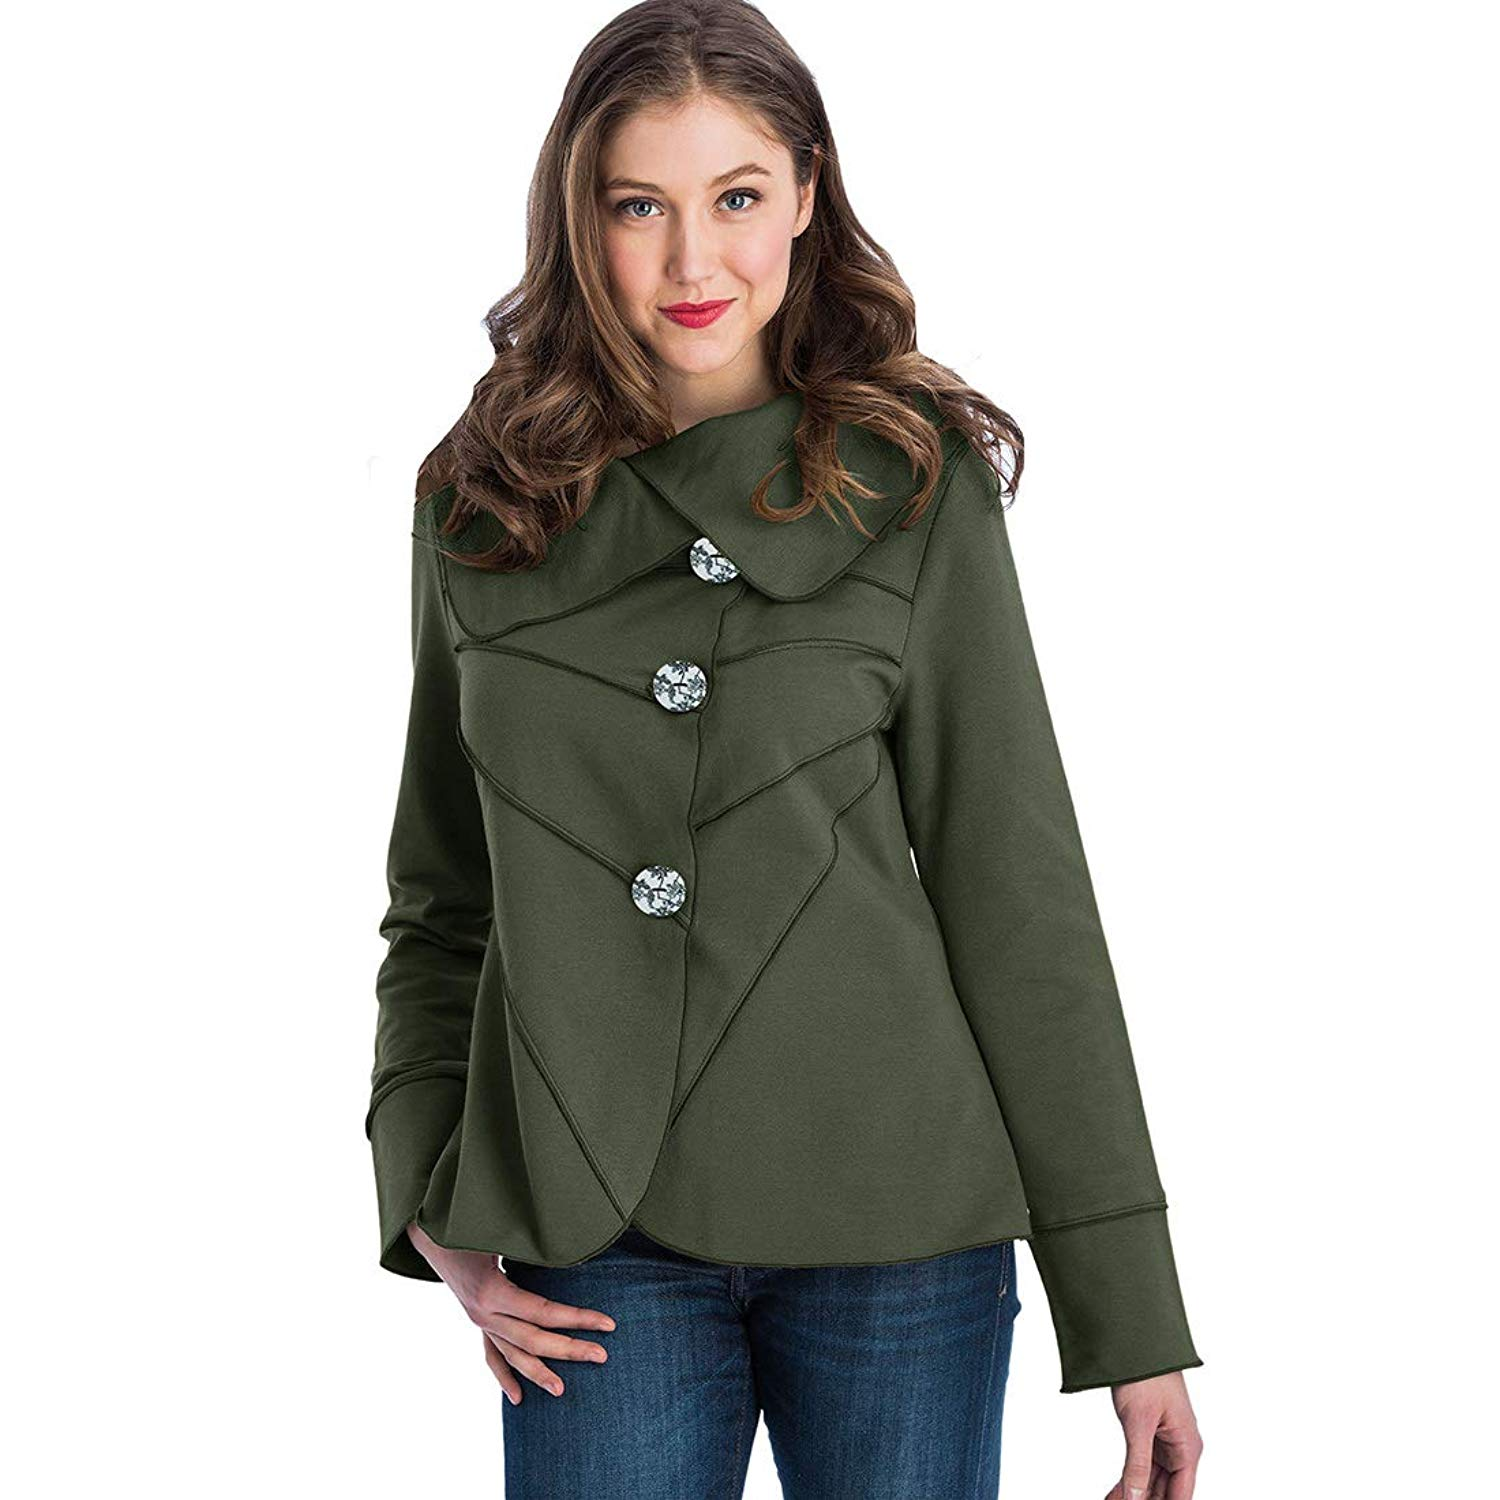 Neon Buddha Womens Lightweight Cotton Jacket Female Casual Trench Coat with Oversized Notched Collar and Toggle